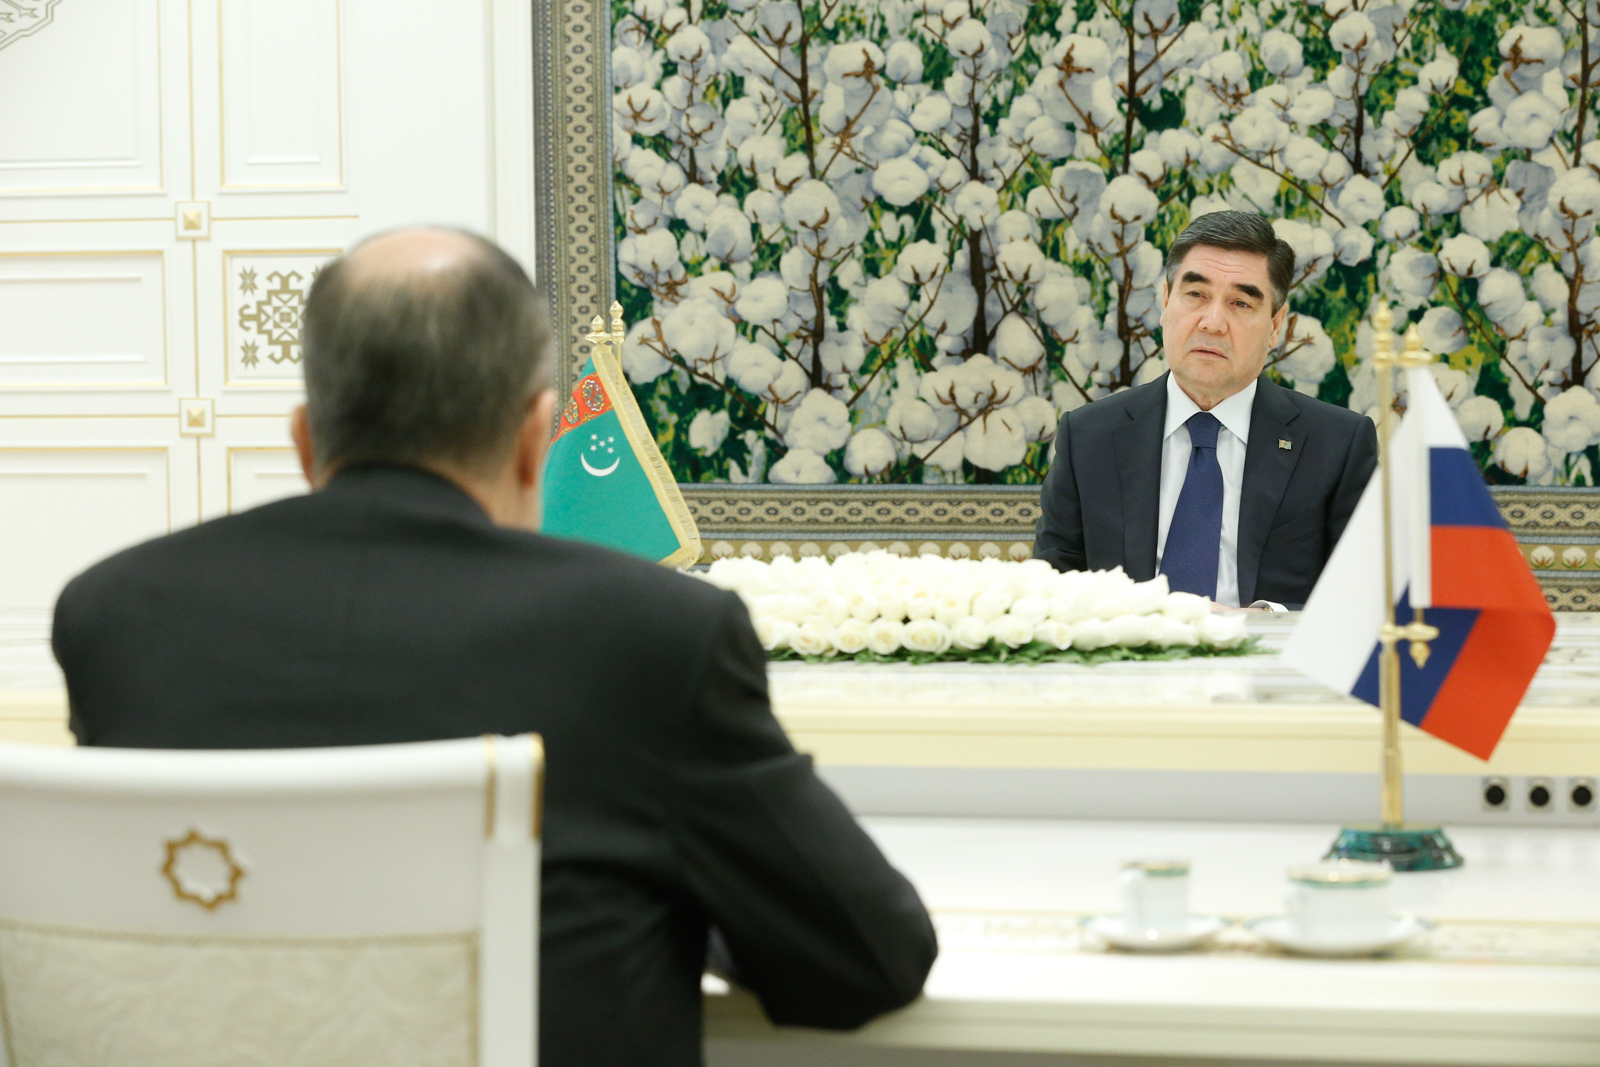 Russian Foreign Minister Sergey Lavrov met with the President of Turkmenistan, Gurbanguly Berdimuhamedov in Ashgabat on February 6, 2019.